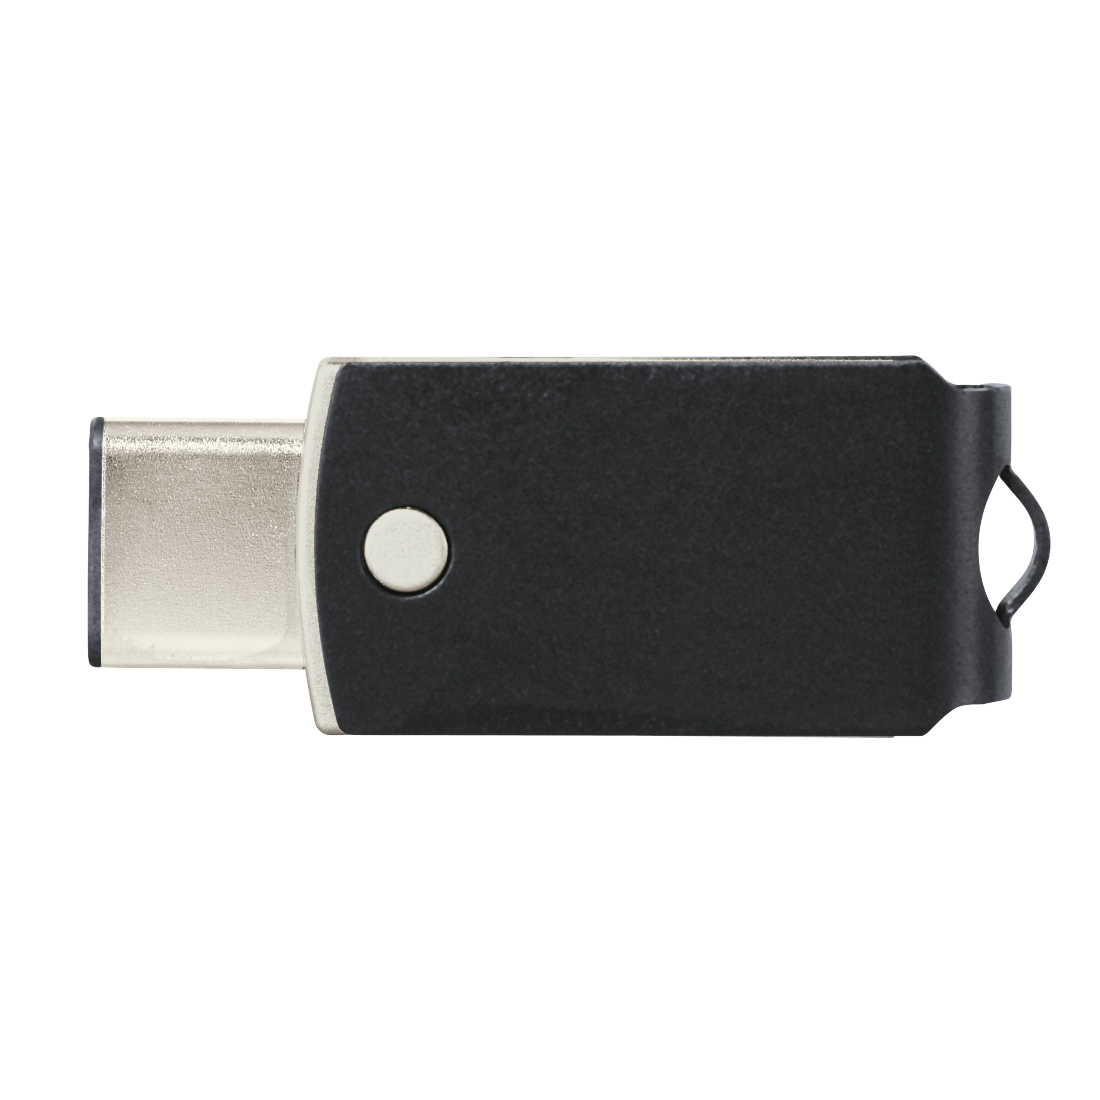 abx4 High-Res Image4 - Hama, Memorie USB tip-C, 16GB, USB3.0, 100mb/s